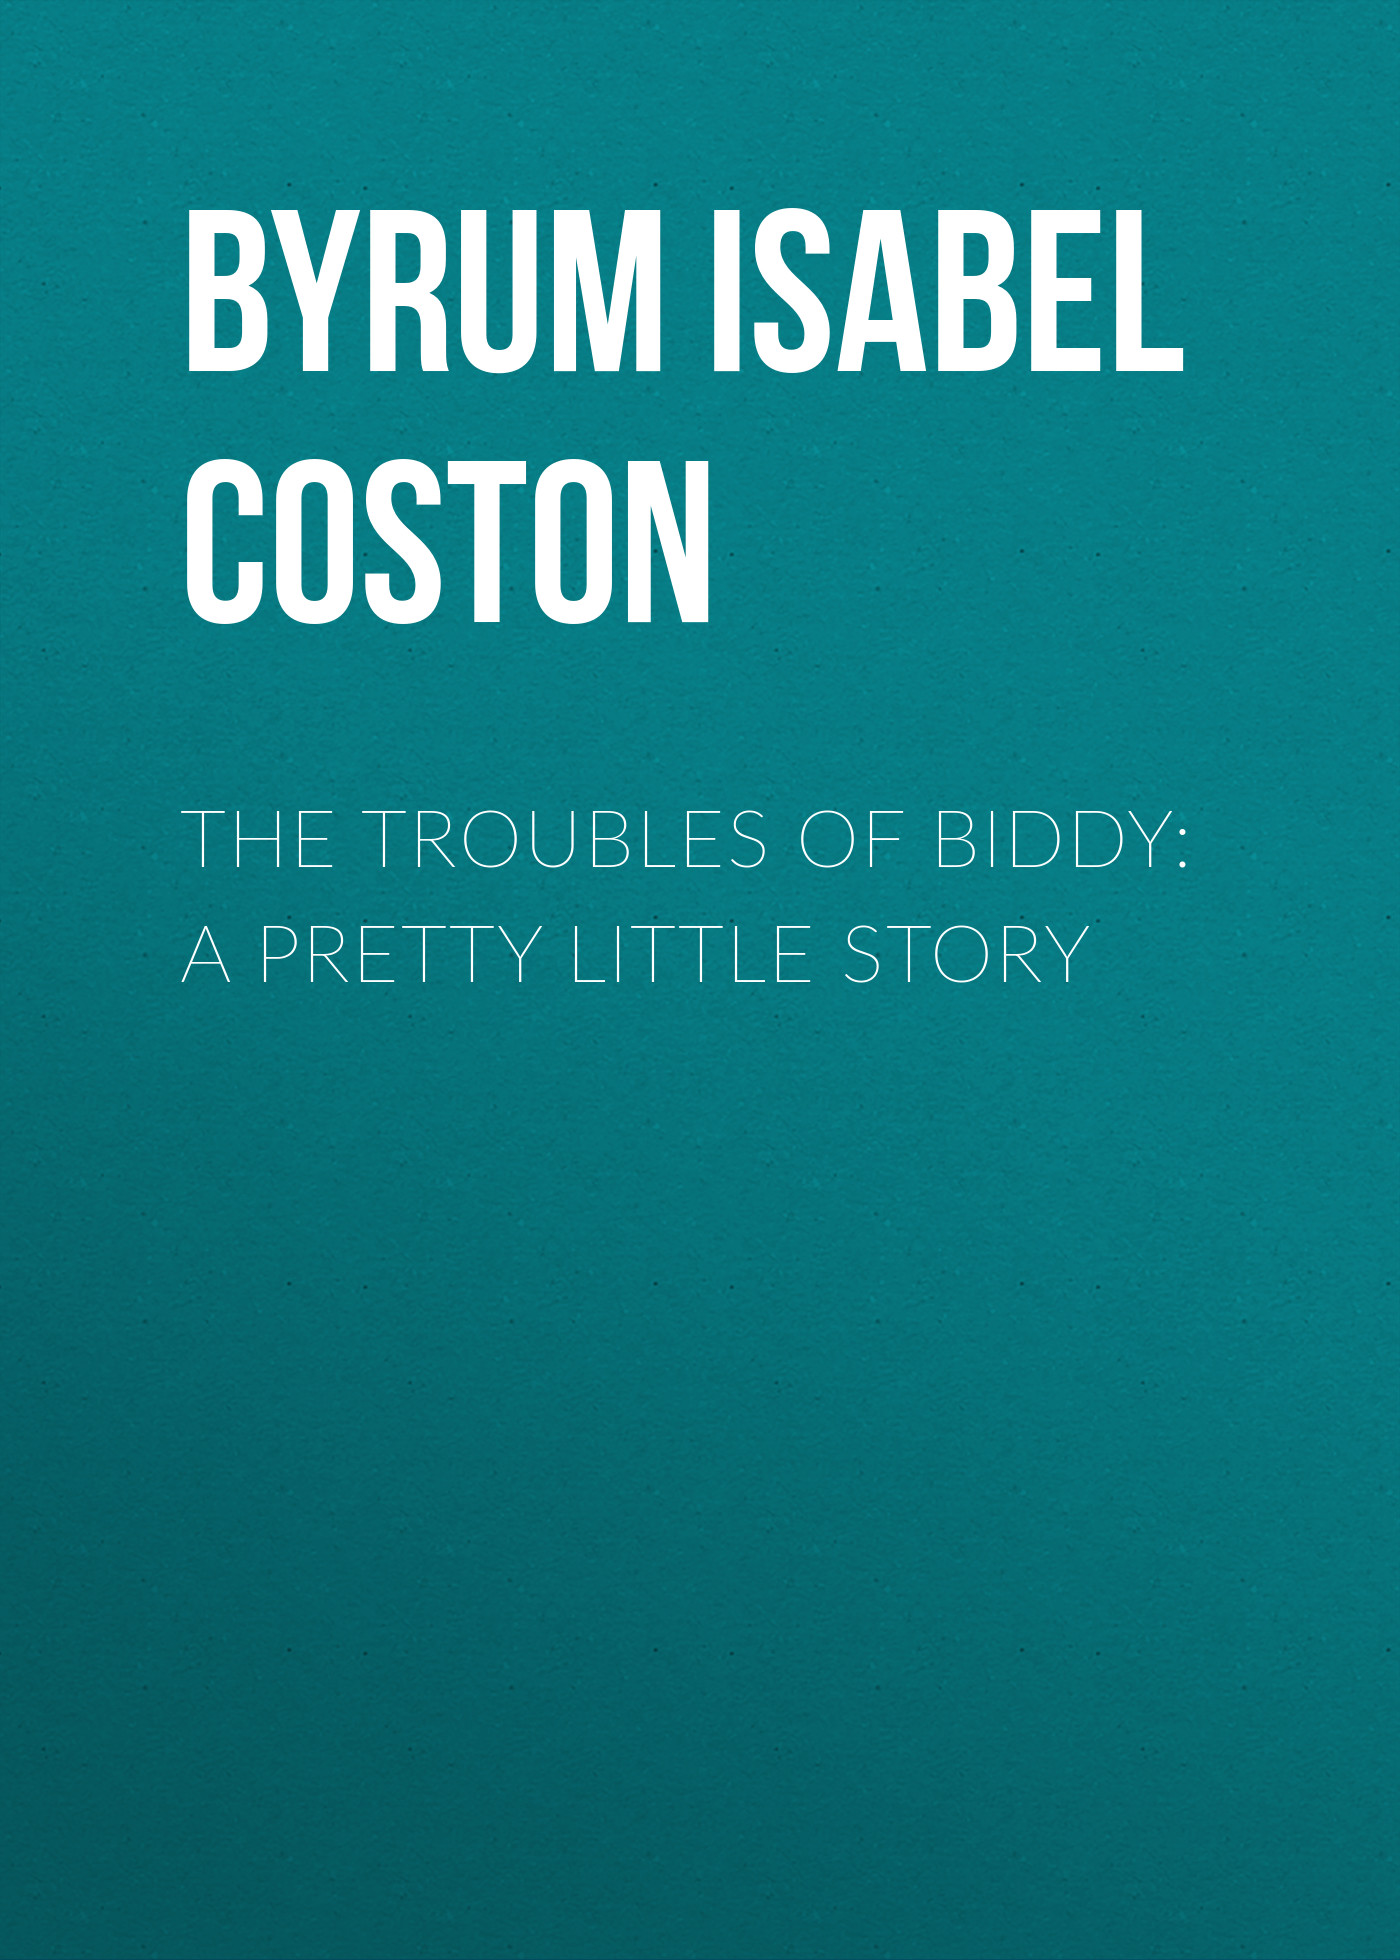 the troubles of biddy a pretty little story